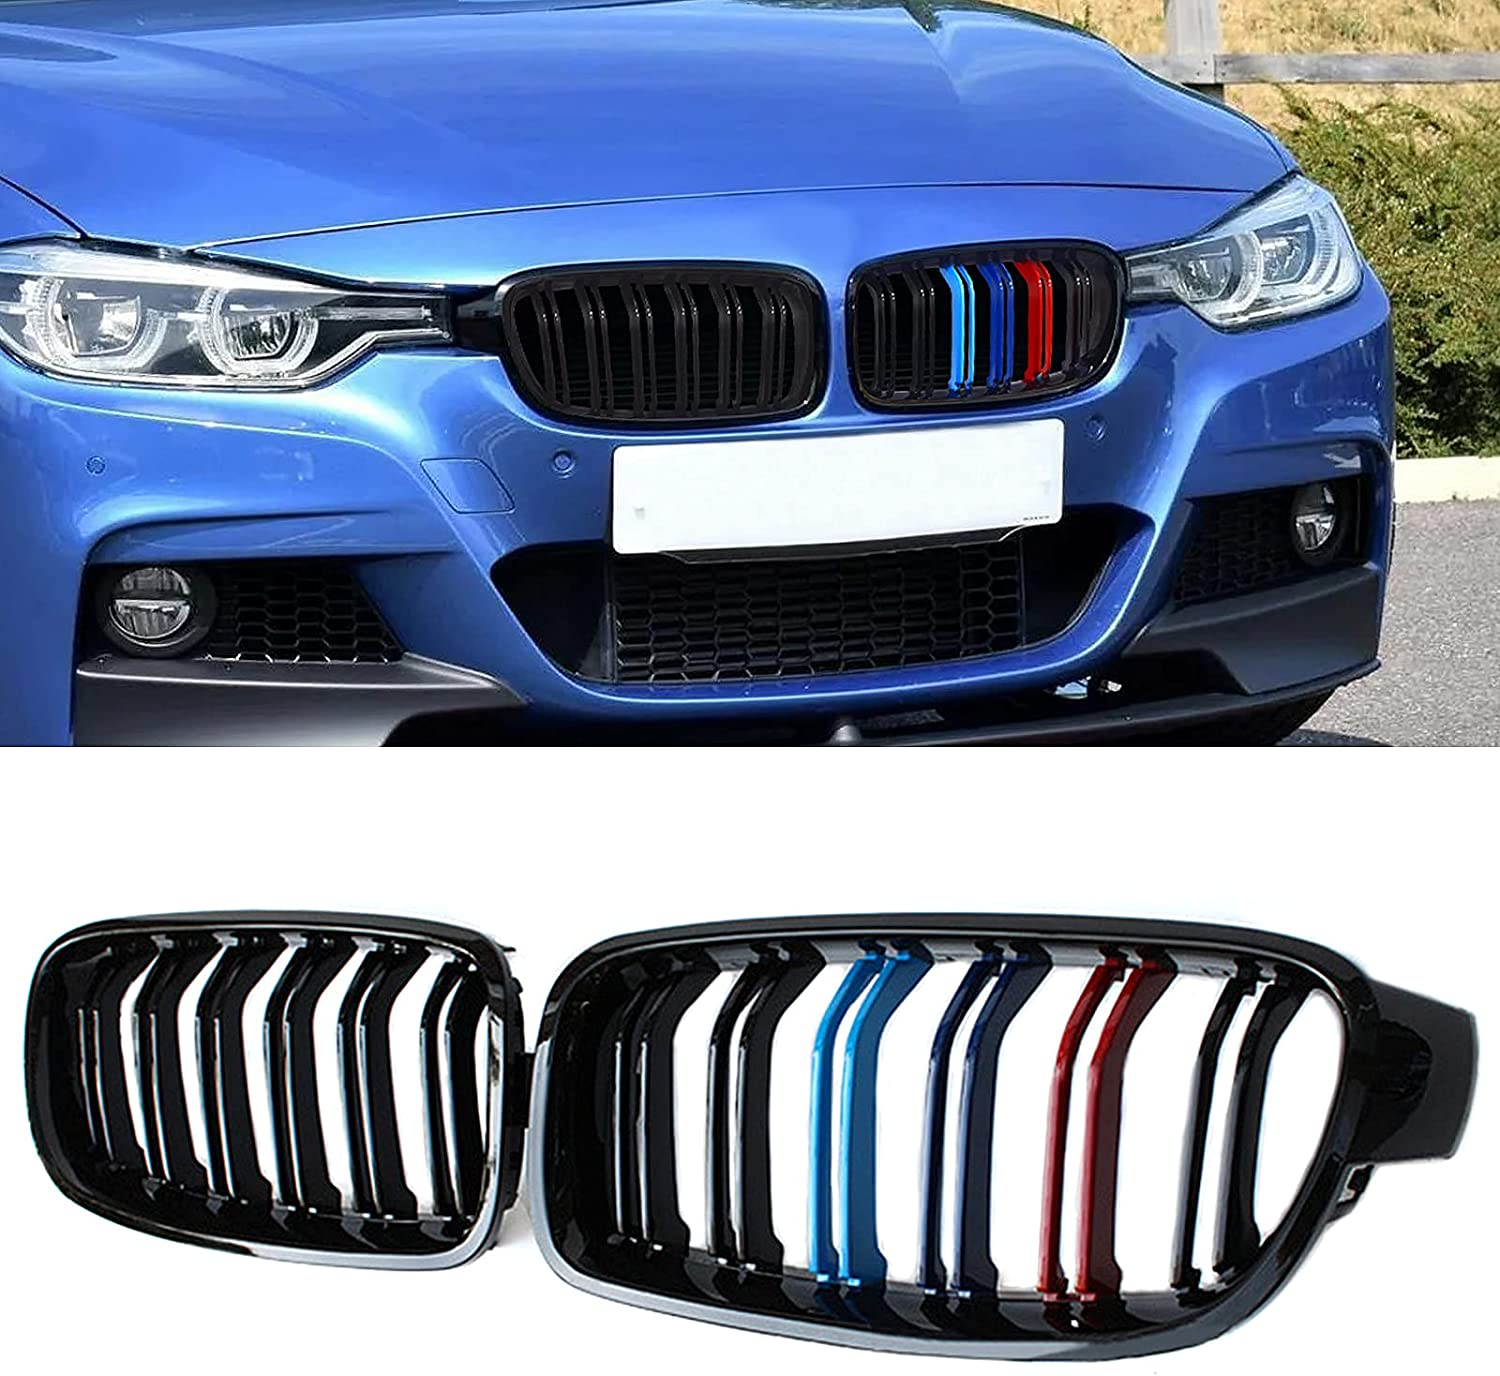 ATPOEN Grill Grille Front Seattle Mall Kidney for BMW Max 77% OFF 32 F31 Series F30 F35 3